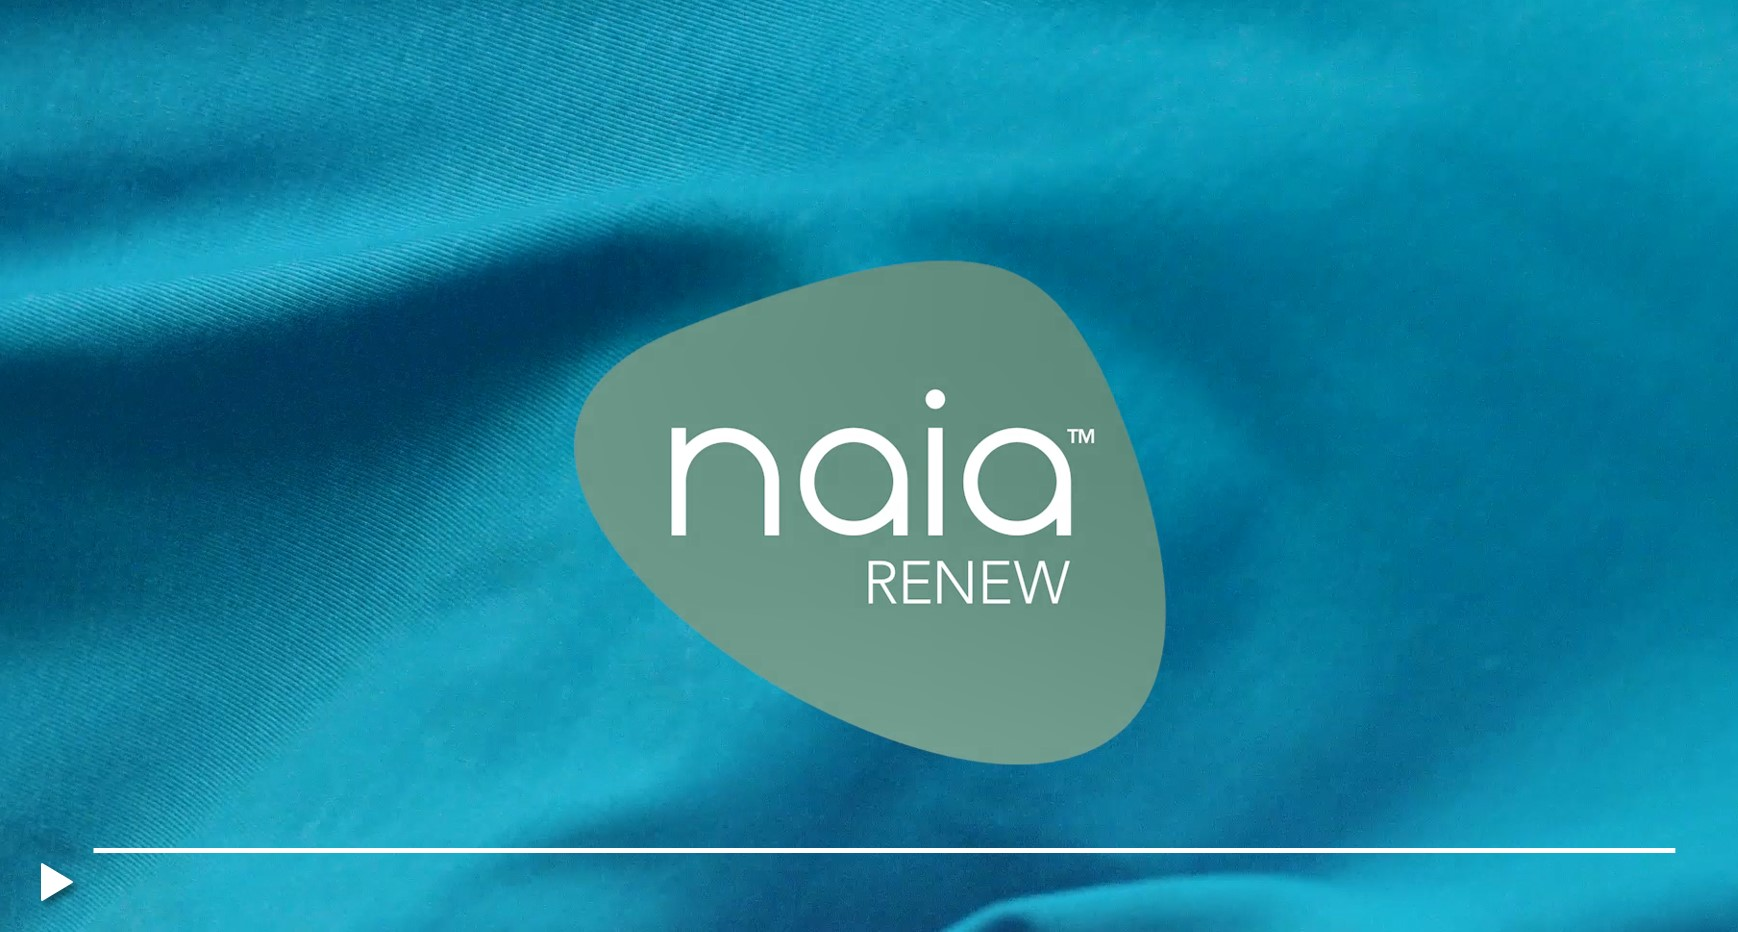 Introducing Eastman Naia™ Renew cellulosic fiber